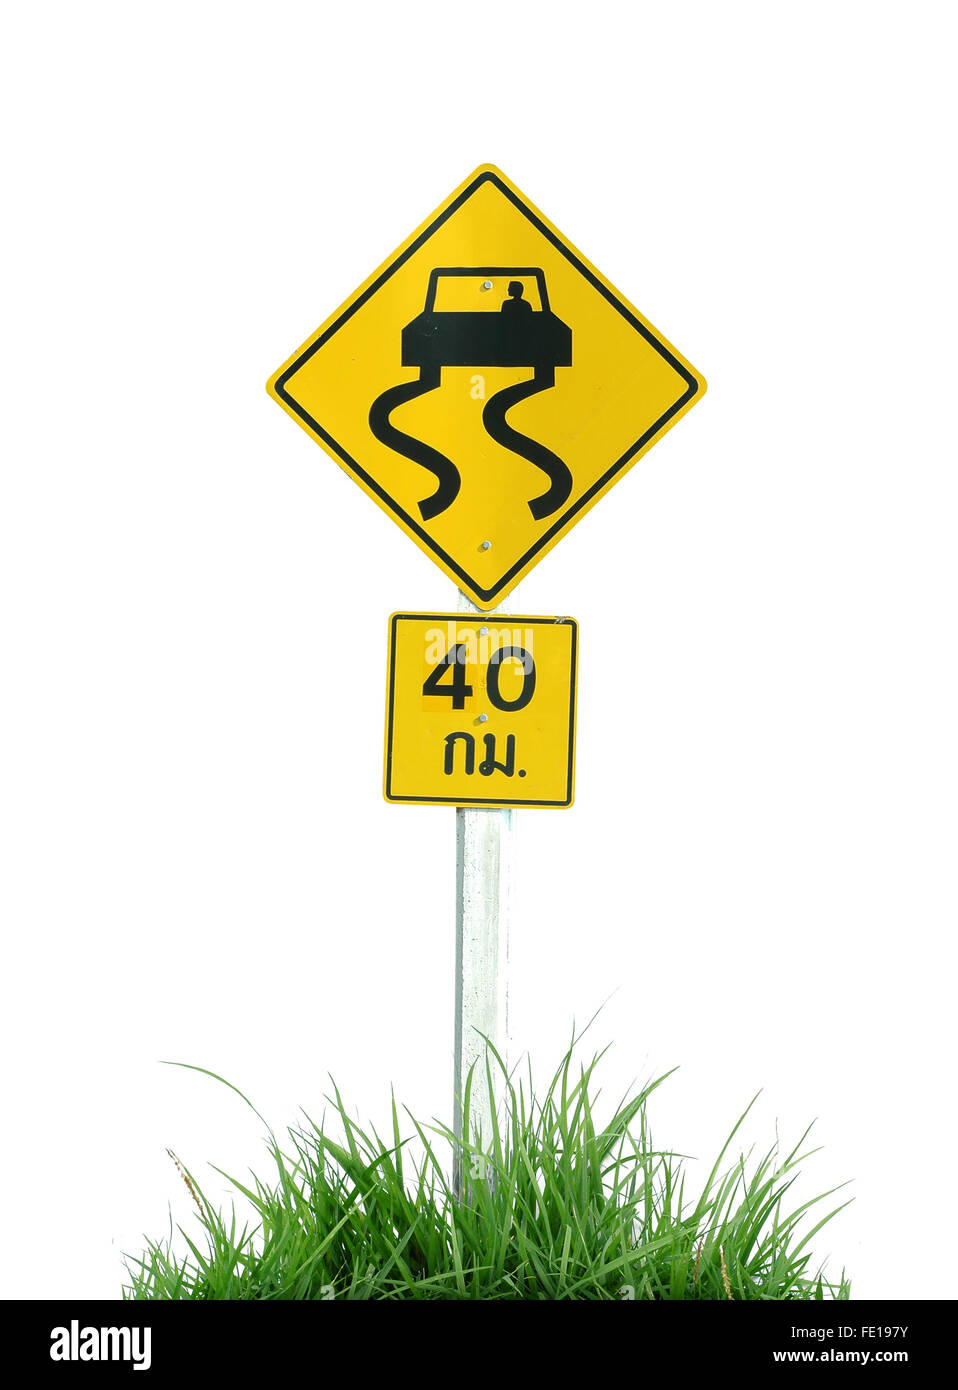 Yellow slippery road sign and green grass isolated on white background - Stock Image